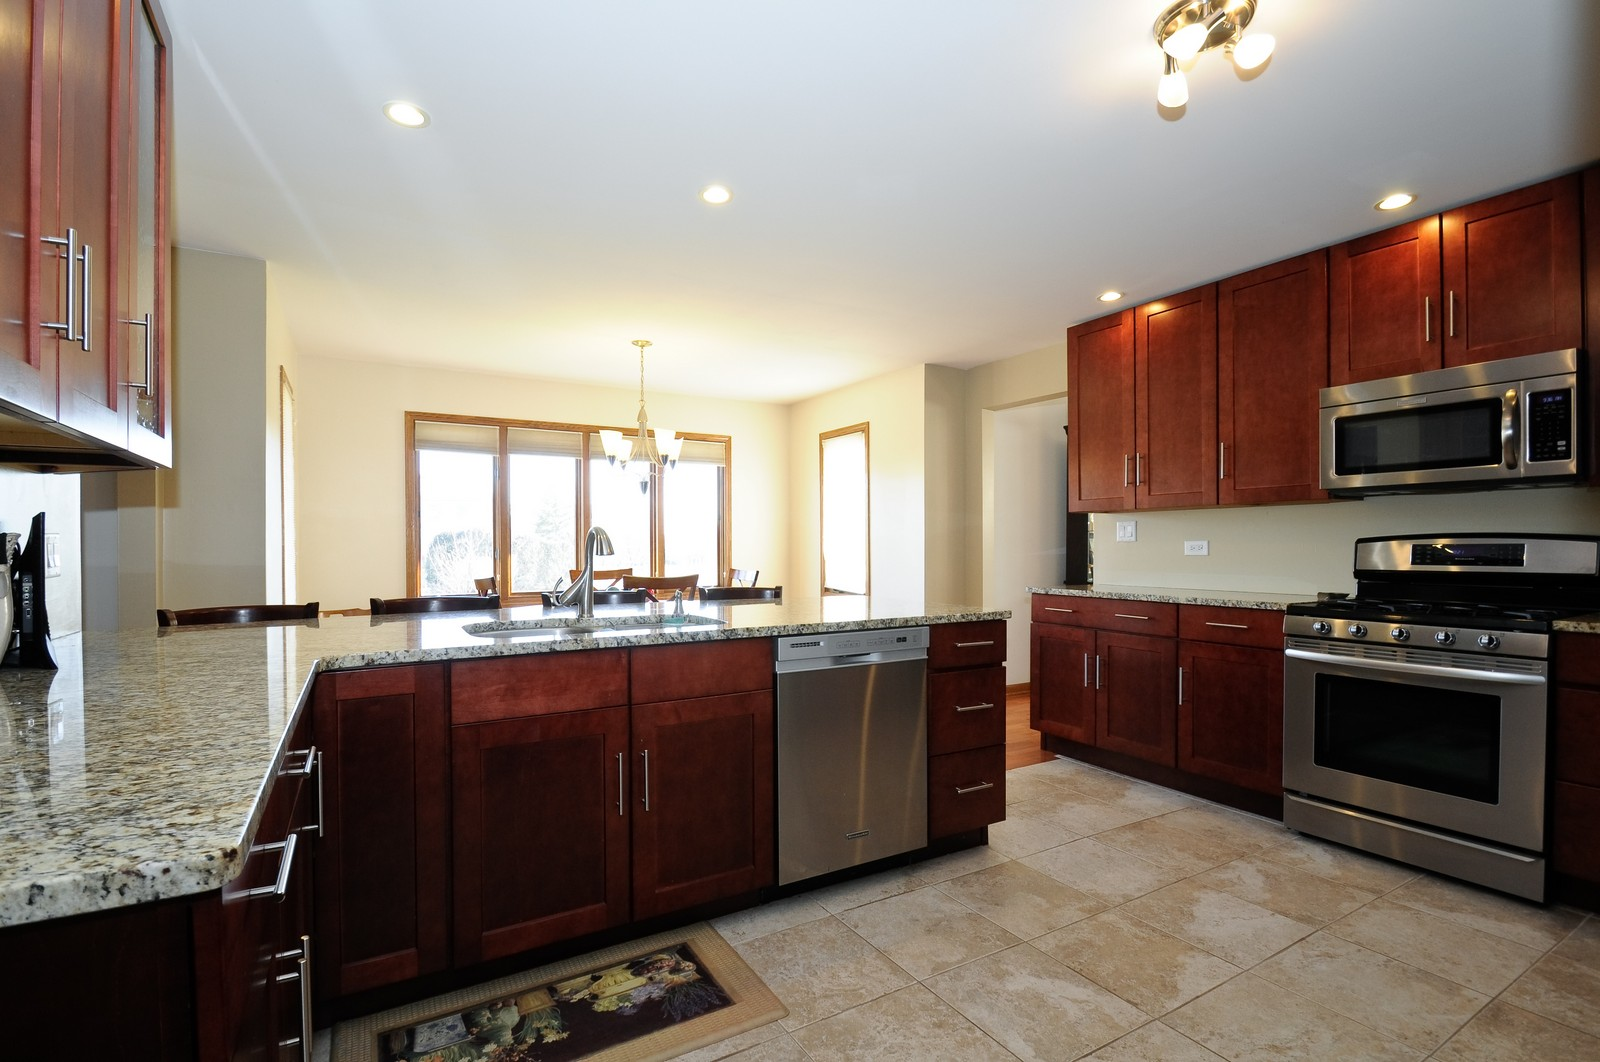 Real Estate Photography - 17197 Winding Creek Dr, Orland Park, IL, 60467 - Kitchen / Breakfast Room